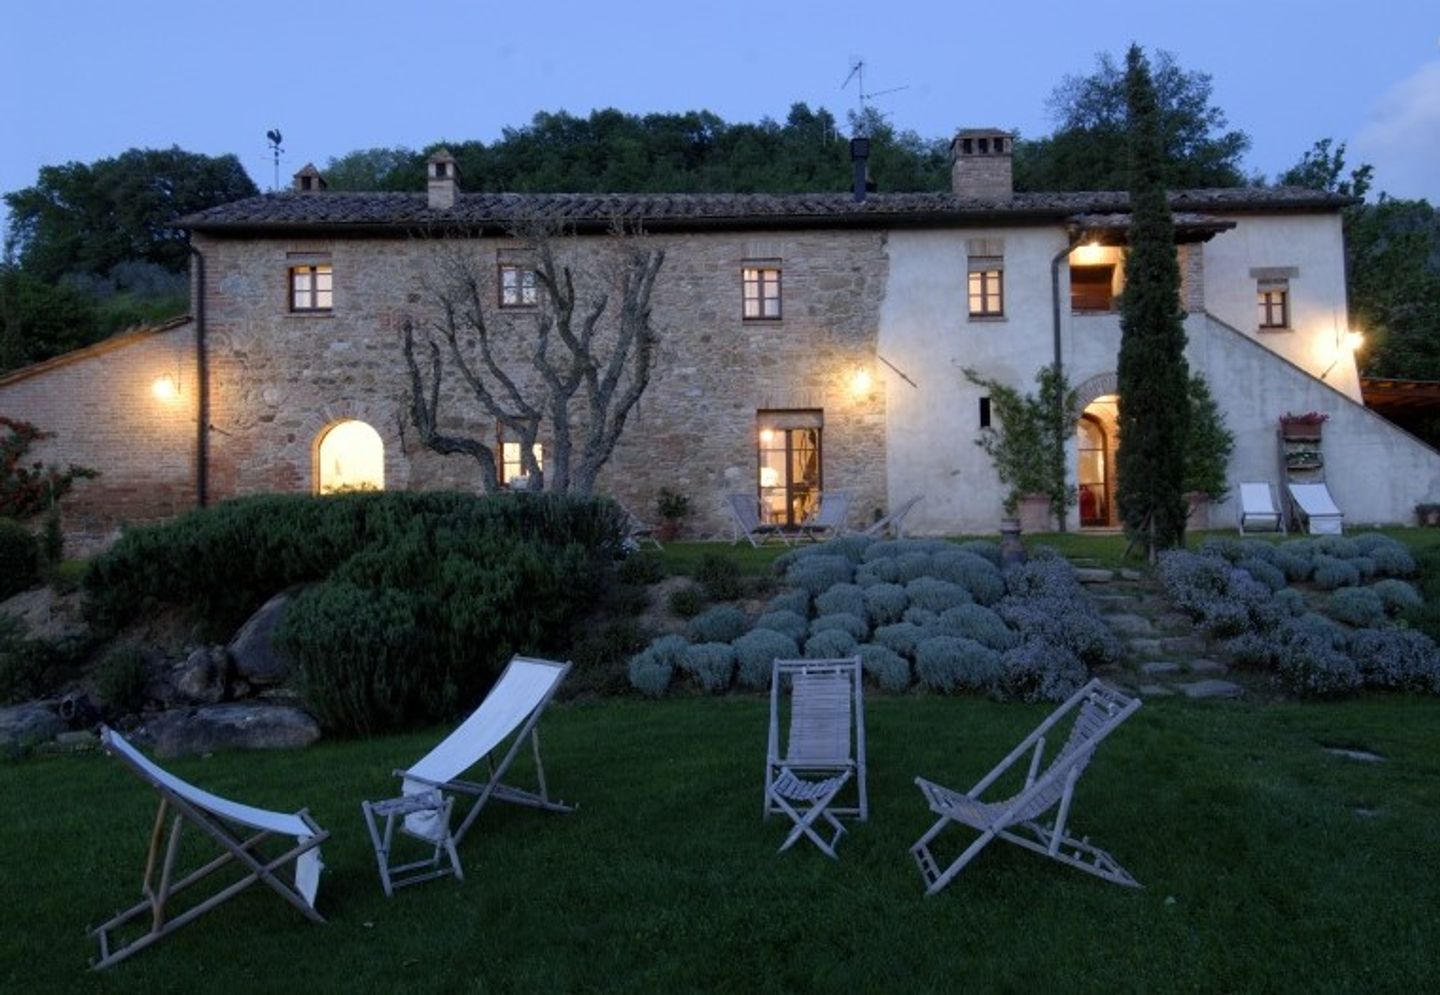 A large lawn in front of a house at Podere Poggio al Sole.